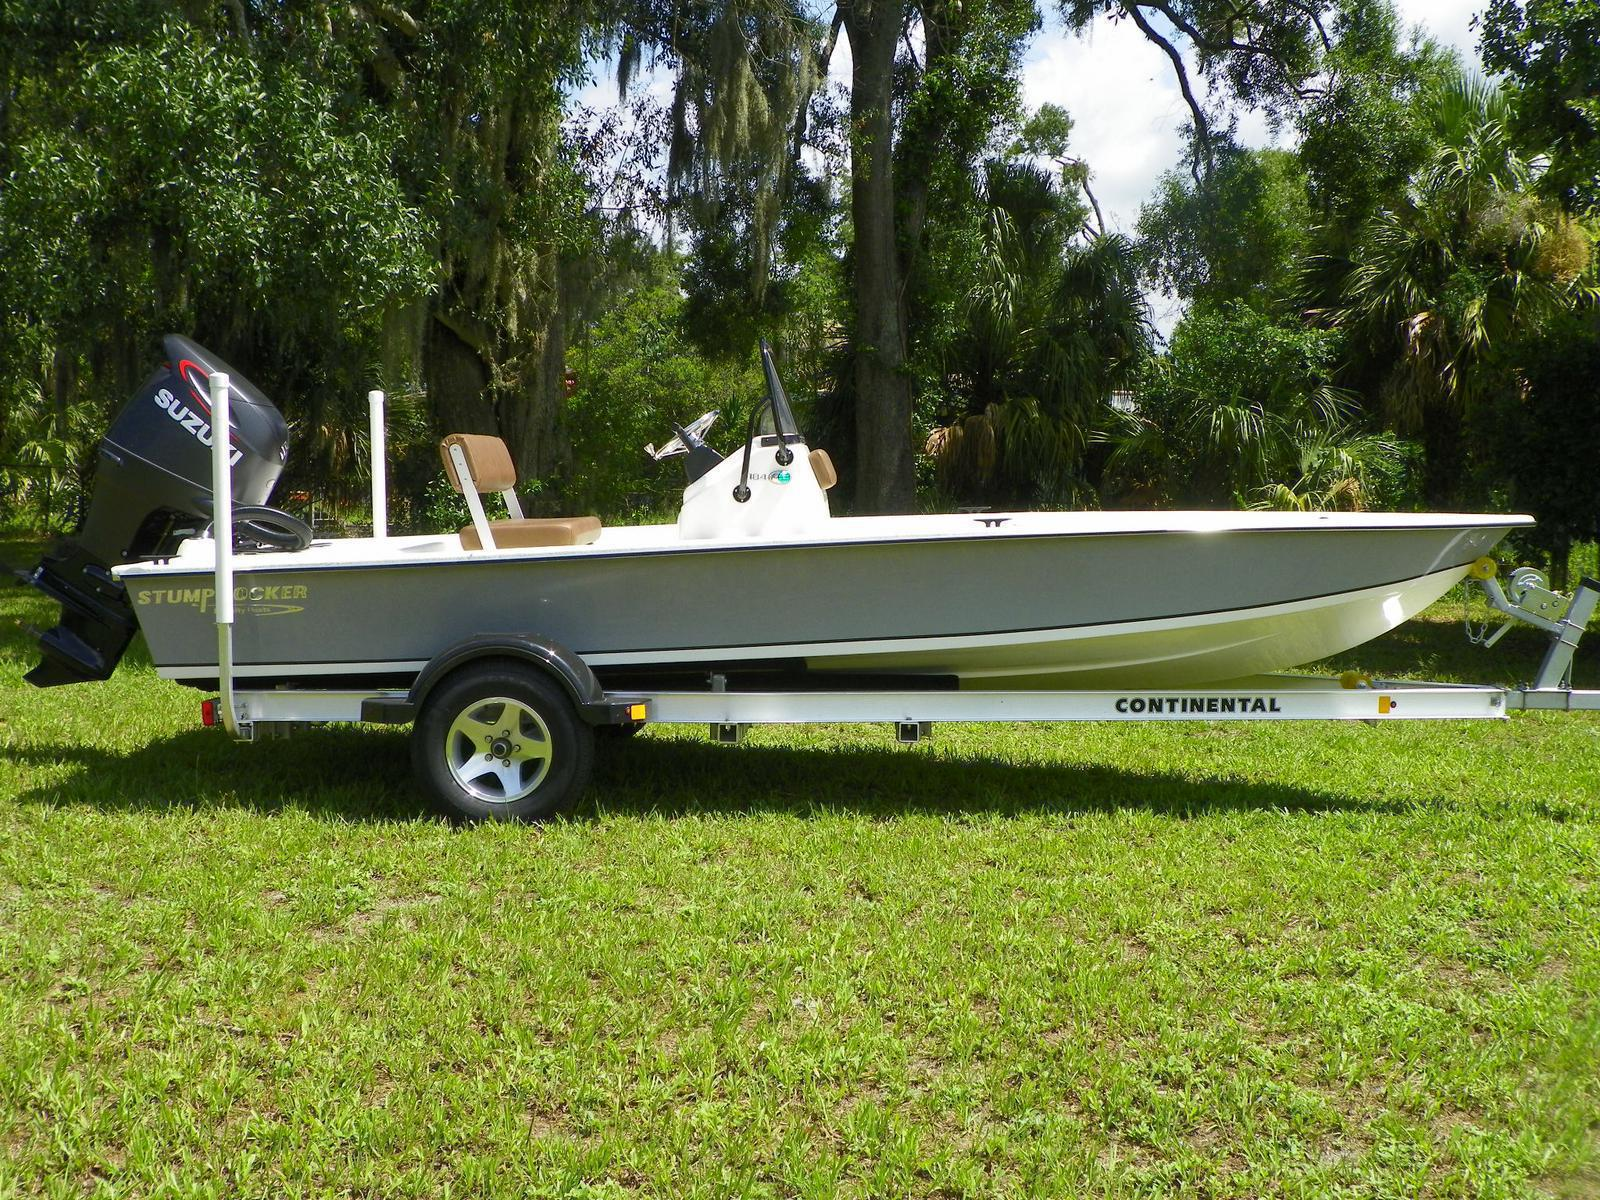 Stumpnocker 184 Coastal